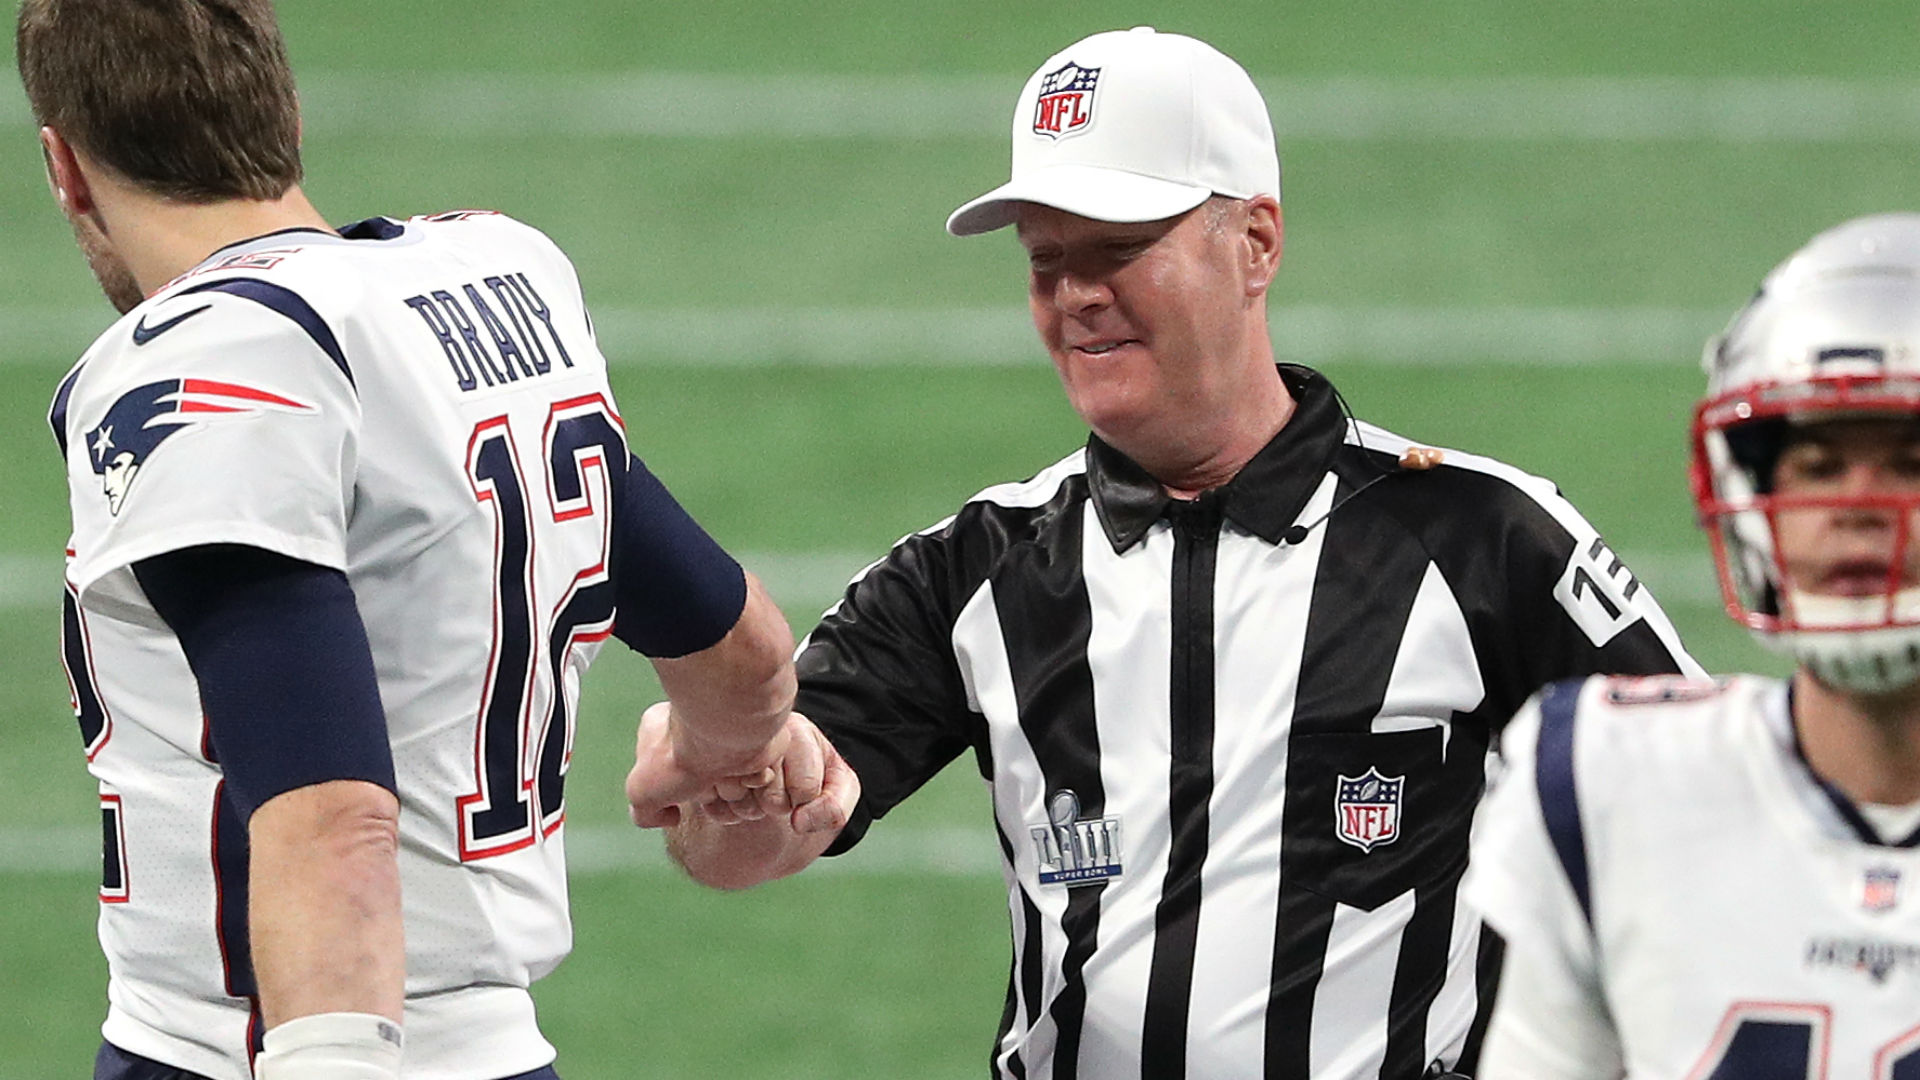 Super Bowl 53 referee John Parry joins ESPN as officiating analyst